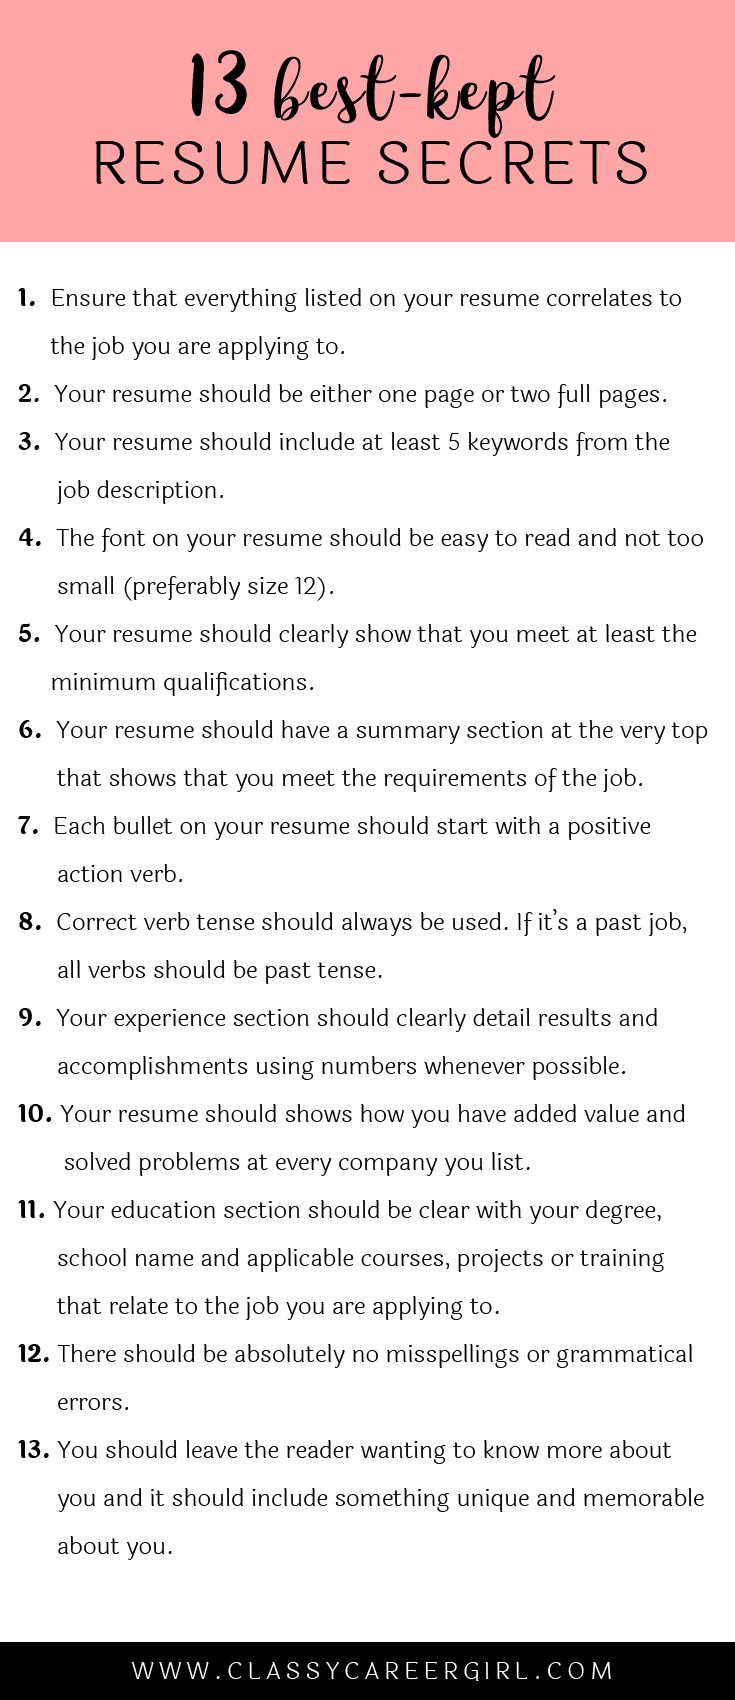 Opposenewapstandardsus  Inspiring  Ideas About Resume On Pinterest  Cv Format Resume  With Marvelous Some Hiring Managers Will Toss Your Resume Out If You Dont Know These  With Delectable Harvard Resume Format Also Resume For Manager In Addition Examples Resumes And Resume Retail Skills As Well As Resume For Students With No Experience Additionally Resumenow Free From Pinterestcom With Opposenewapstandardsus  Marvelous  Ideas About Resume On Pinterest  Cv Format Resume  With Delectable Some Hiring Managers Will Toss Your Resume Out If You Dont Know These  And Inspiring Harvard Resume Format Also Resume For Manager In Addition Examples Resumes From Pinterestcom